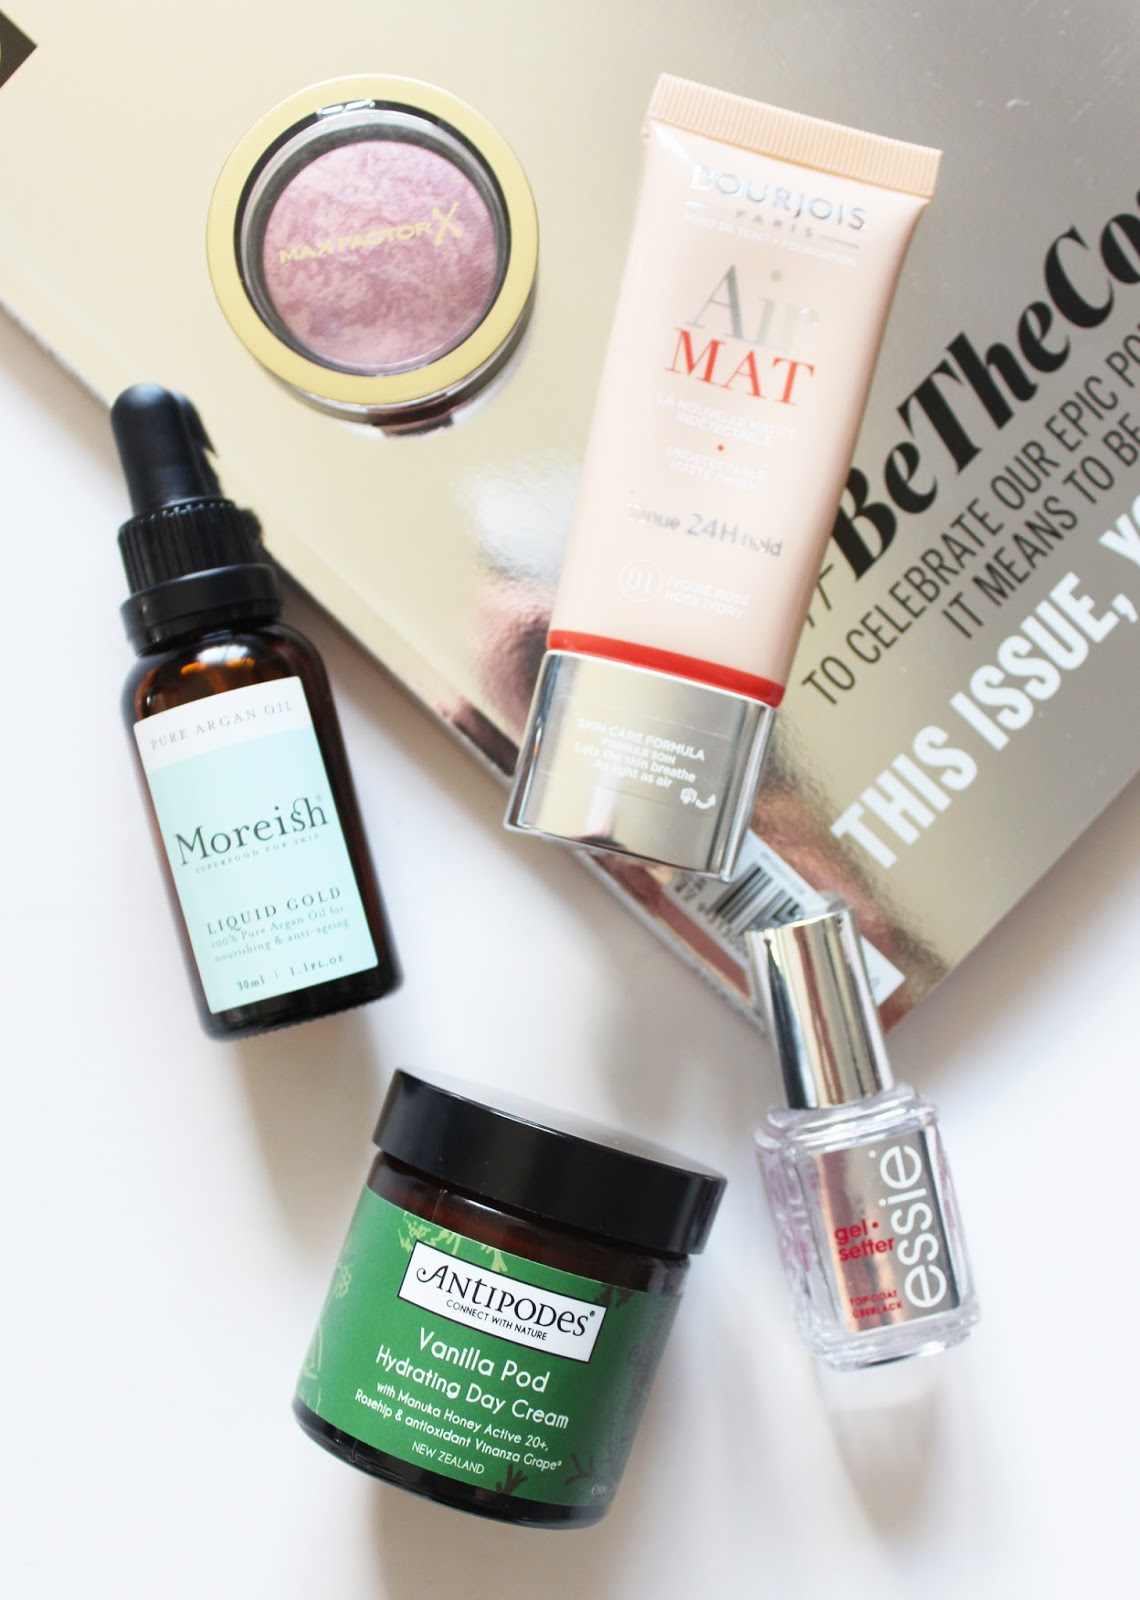 MOST LOVED | October '15 - Max Factor, Moreish Skincare, Antipodes, Essie, Bourjois - CassandraMyee